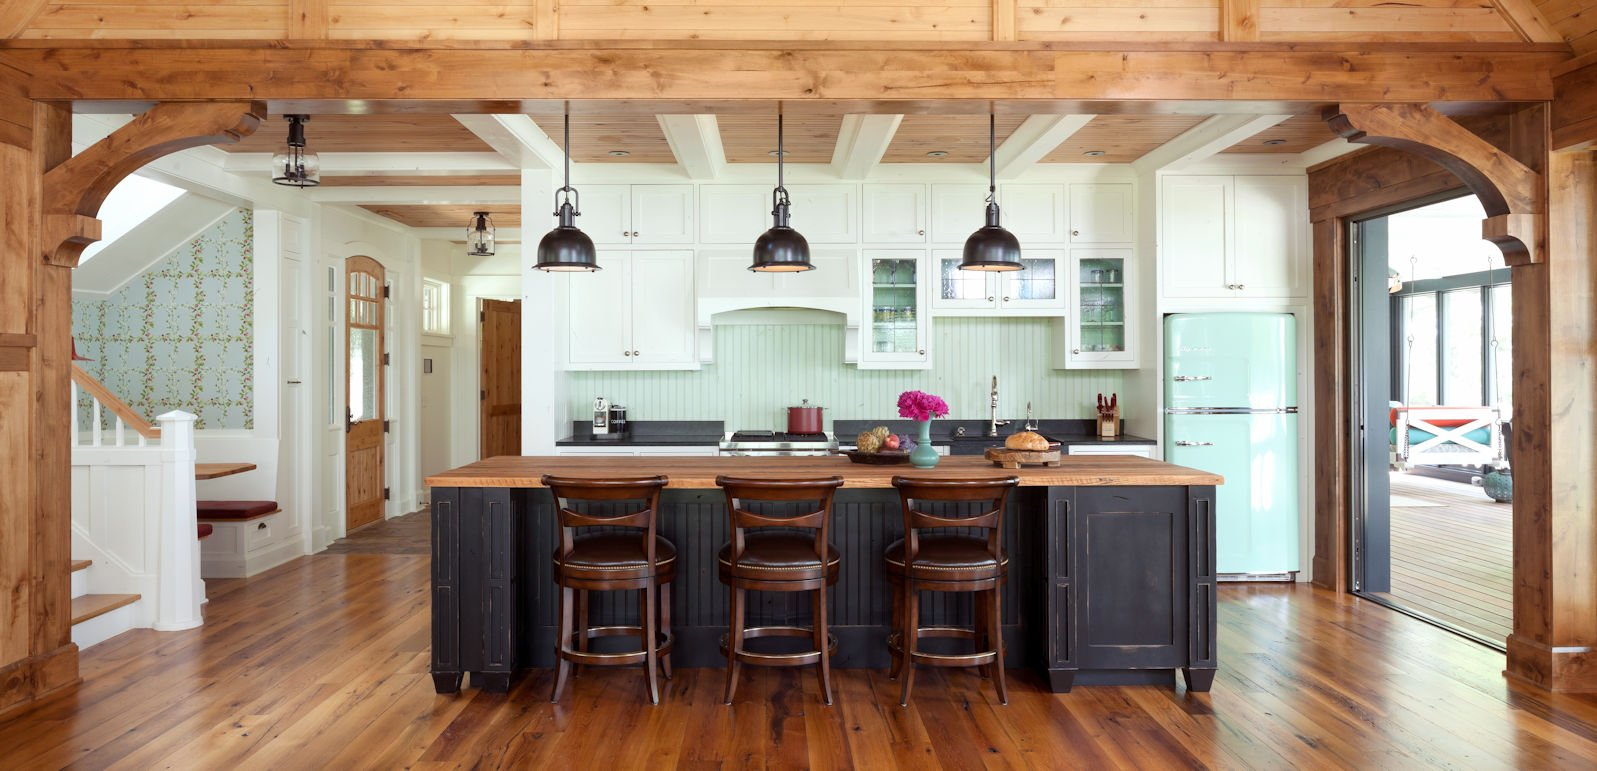 Lakeside Retreat kitchen by Twist Interior Design